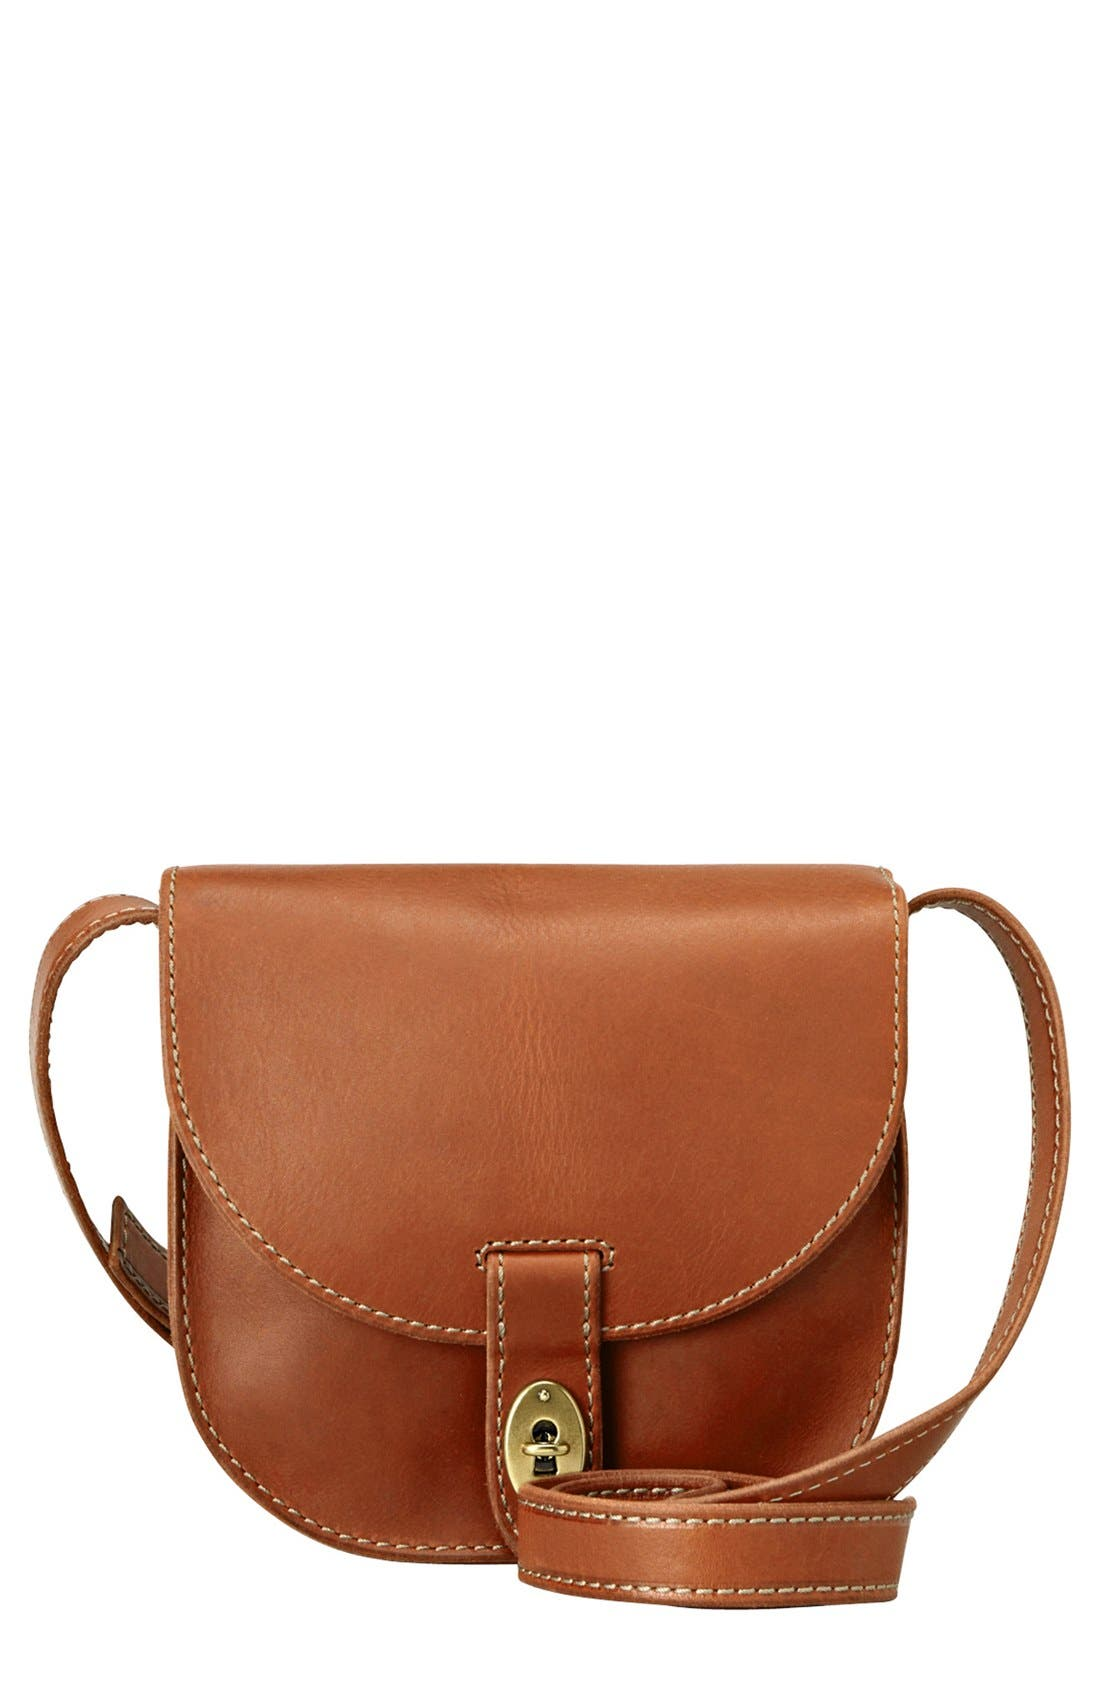 Alternate Image 1 Selected - Fossil 'Austin - Small' Crossbody Bag